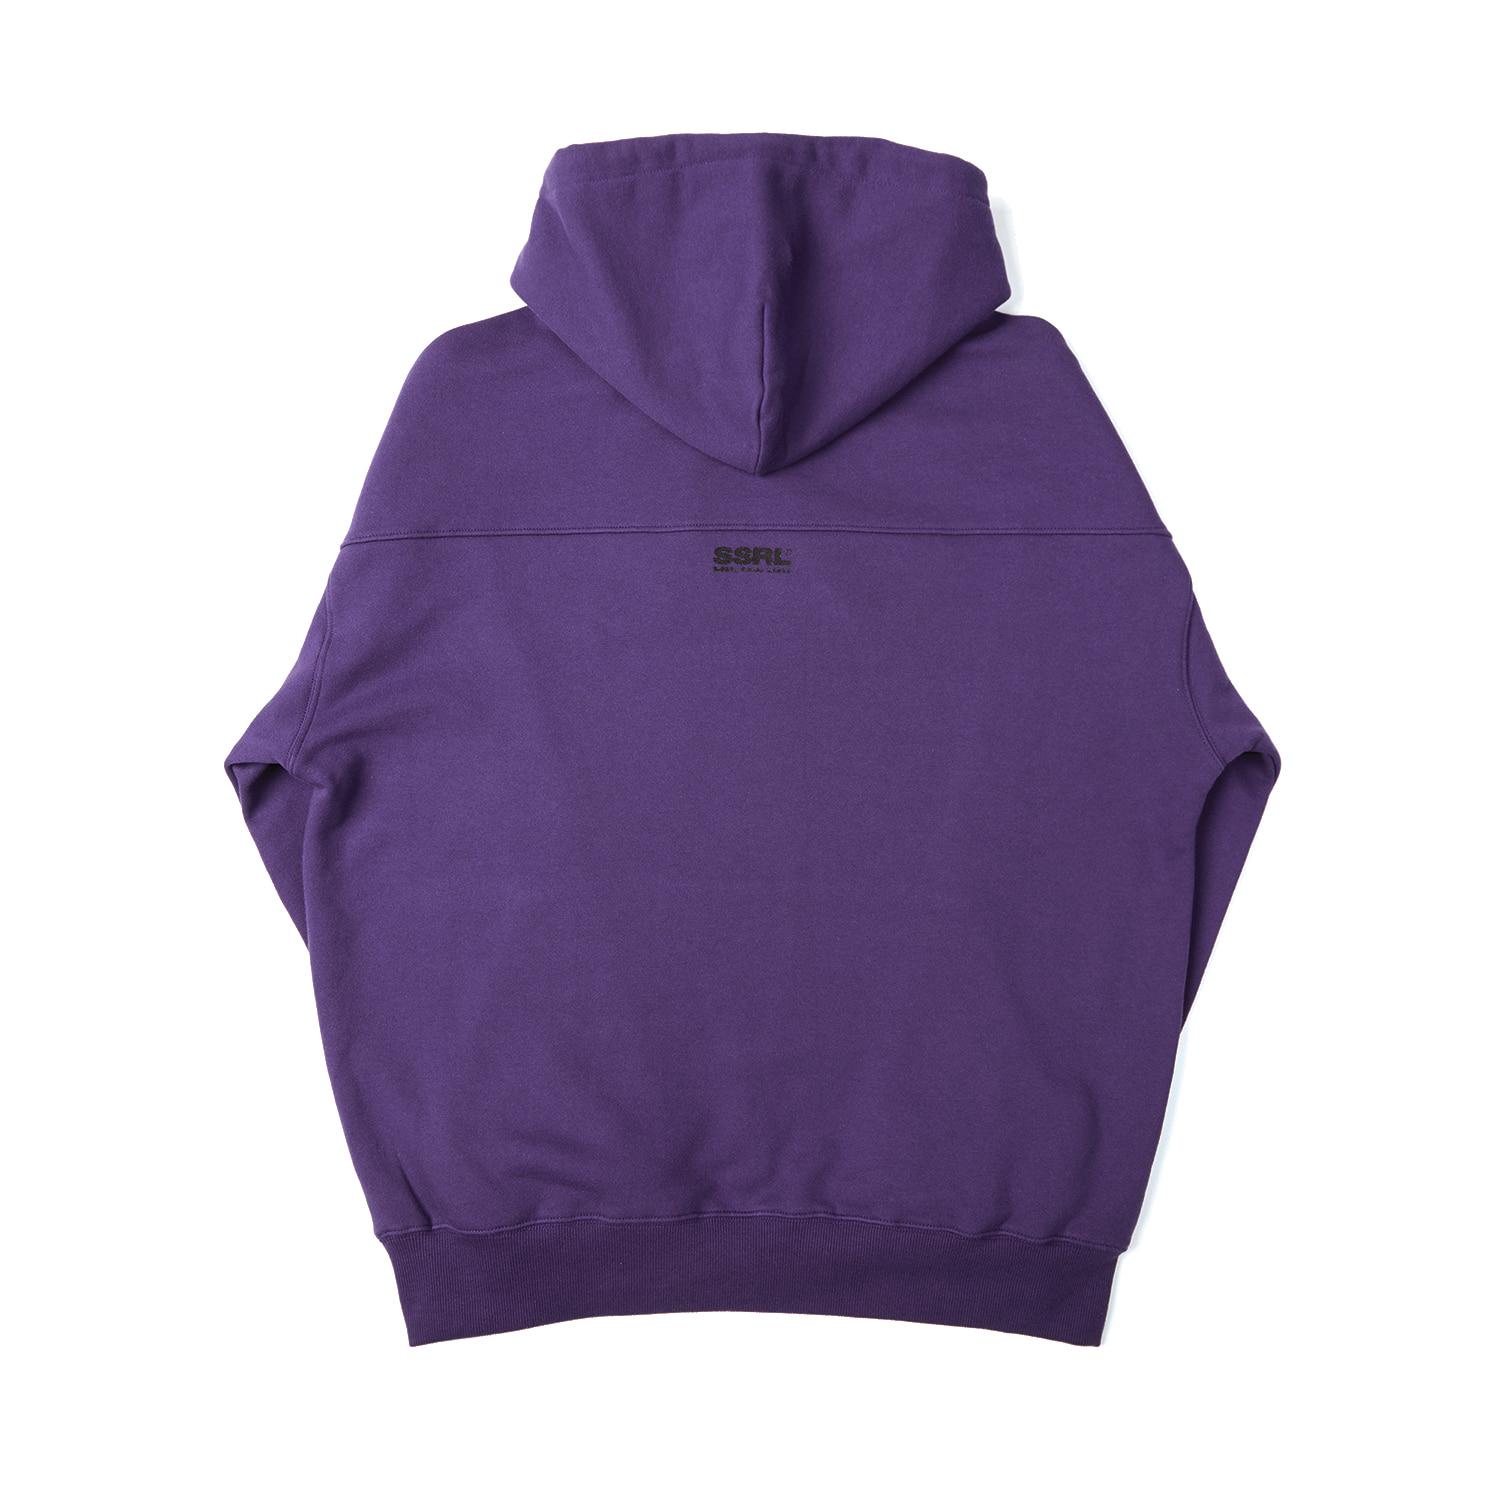 [주우재착용]arch logo hood / purple